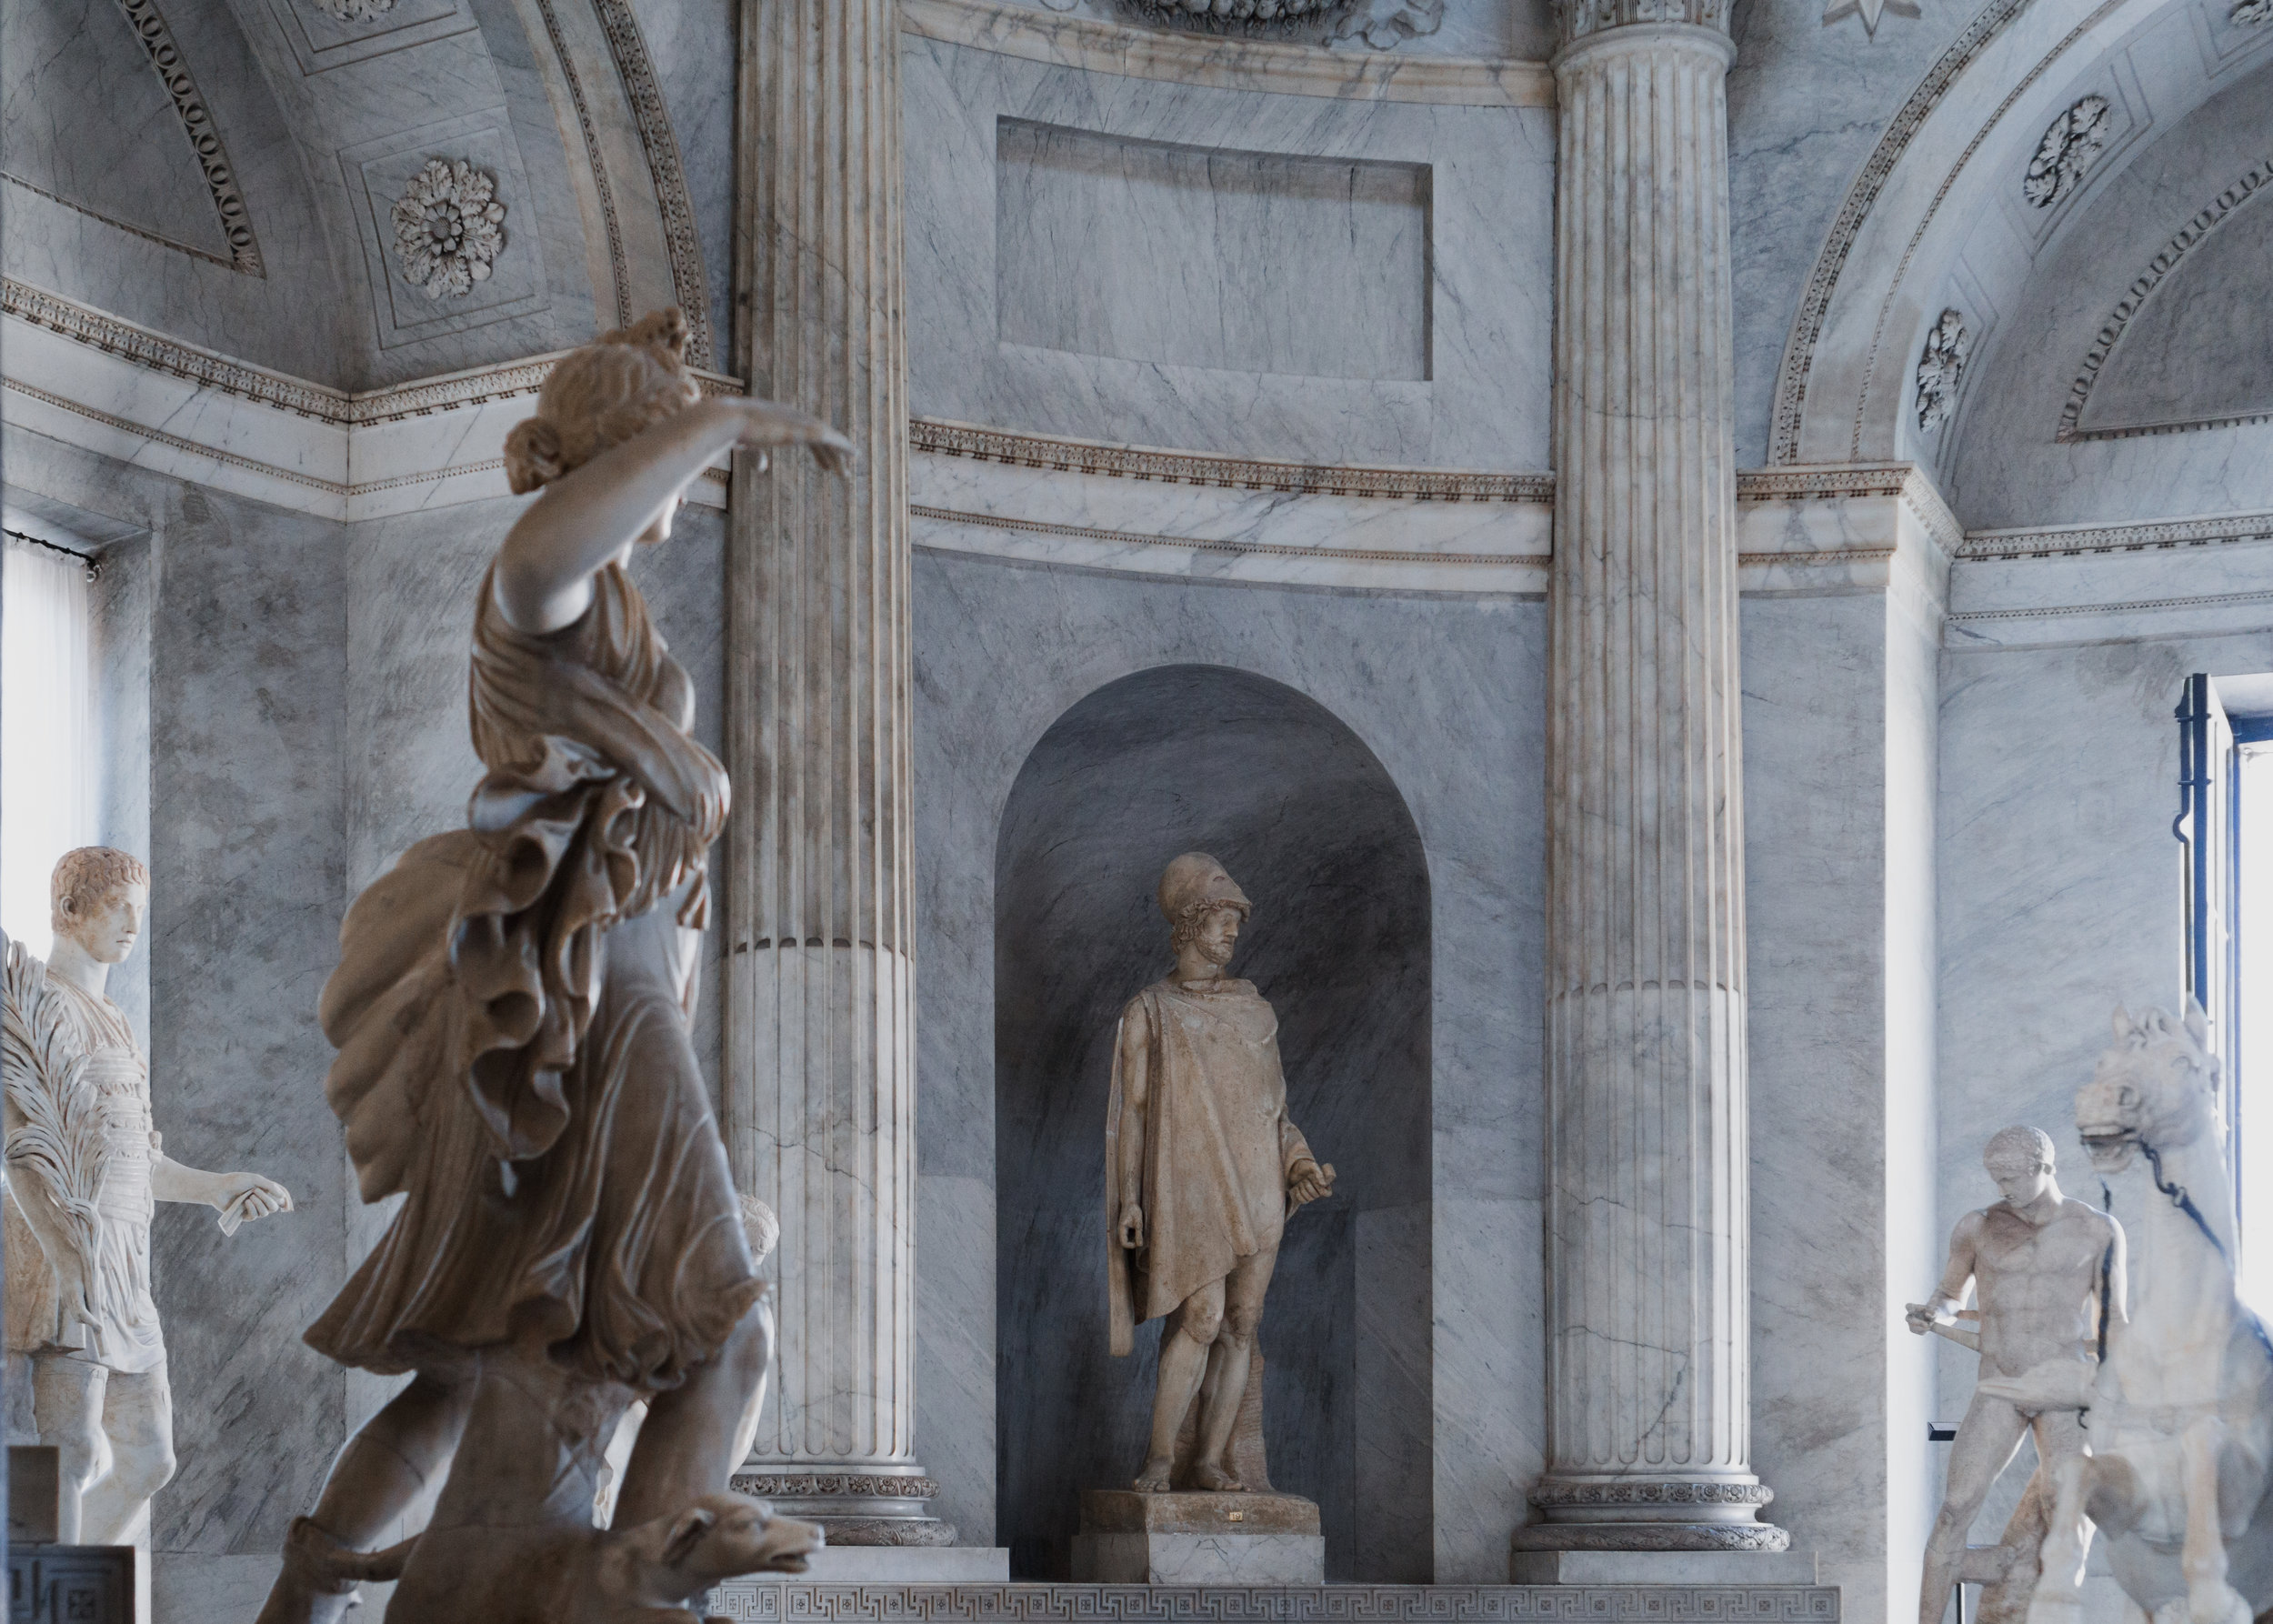 Italian Aesthetics informed by Classical Antiquity & the Renaissance